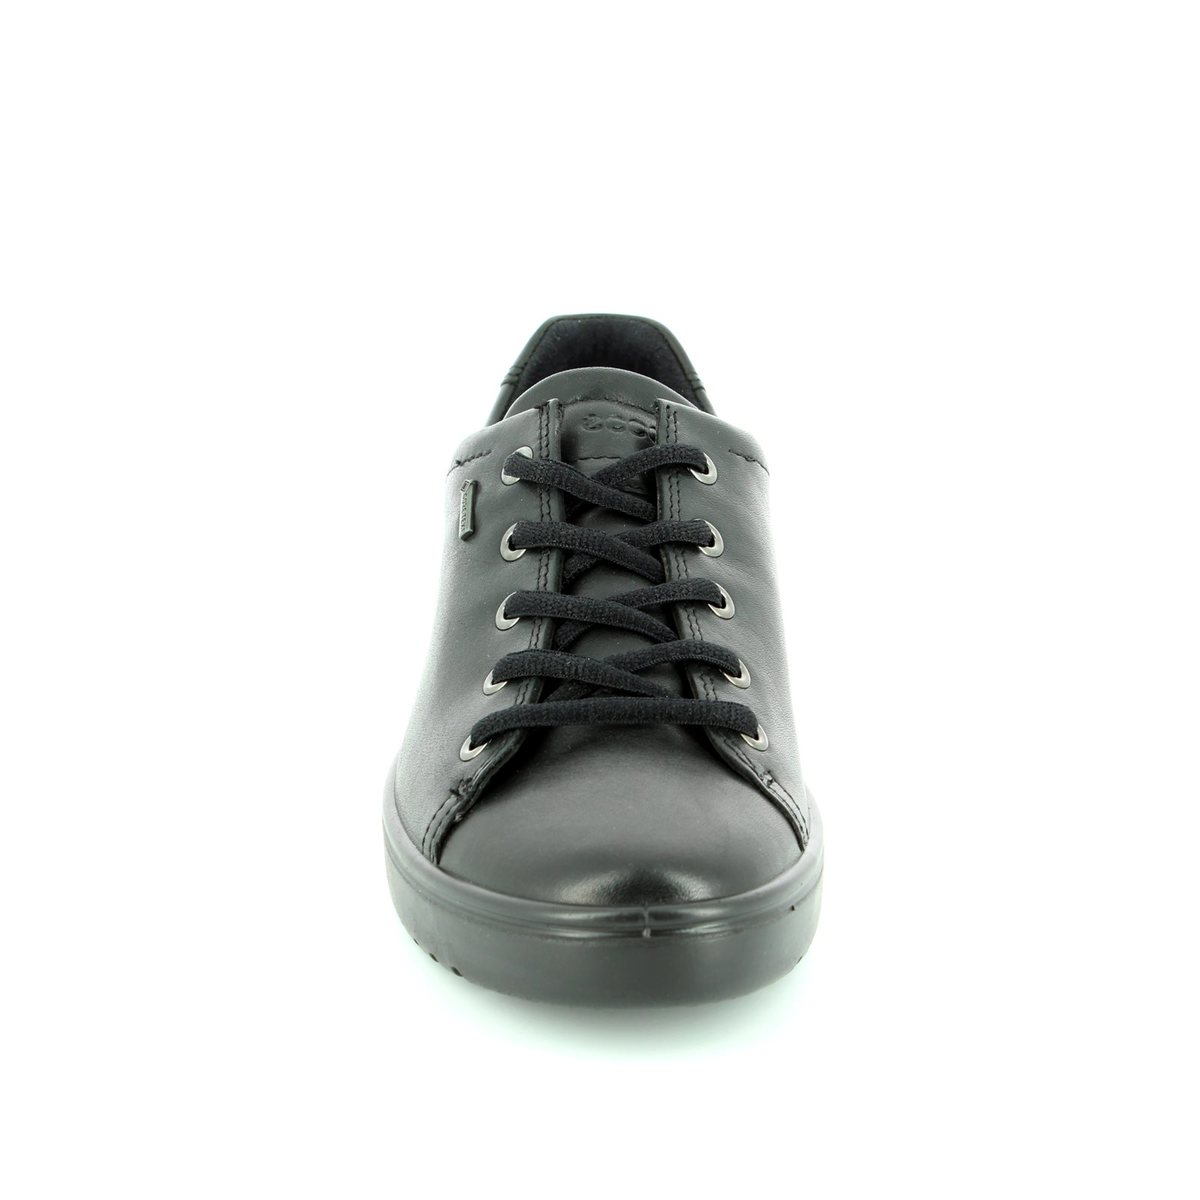 3a7b8703a51 ECCO Lacing Shoes - Black - 235333/01001 FARA GORE-TEX